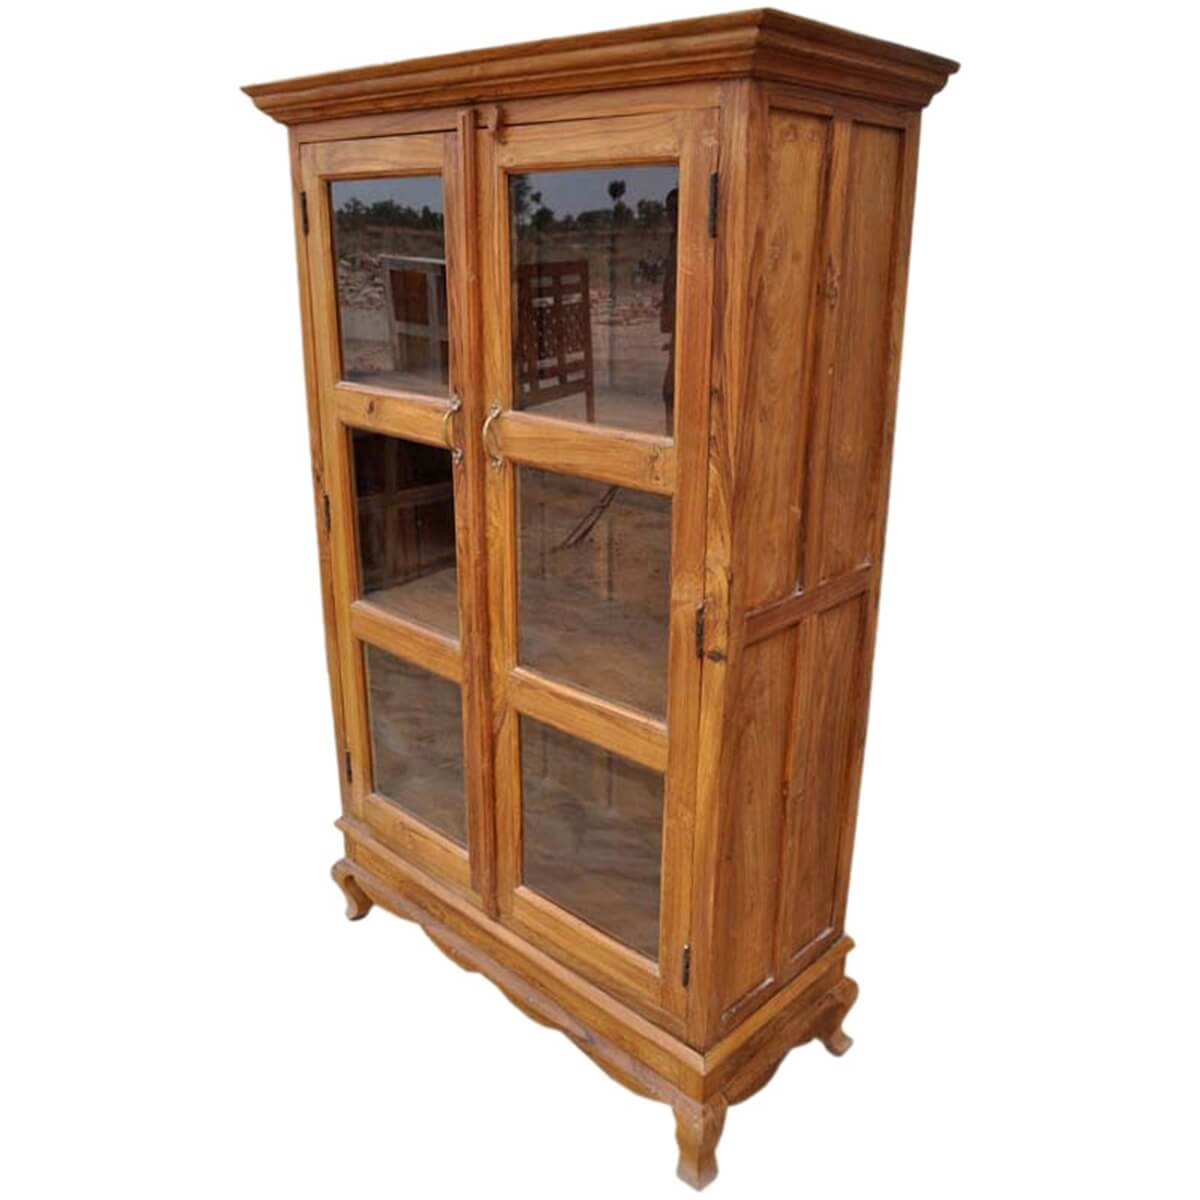 Inglis Solid Wood Glass Door Freestanding Bookcase